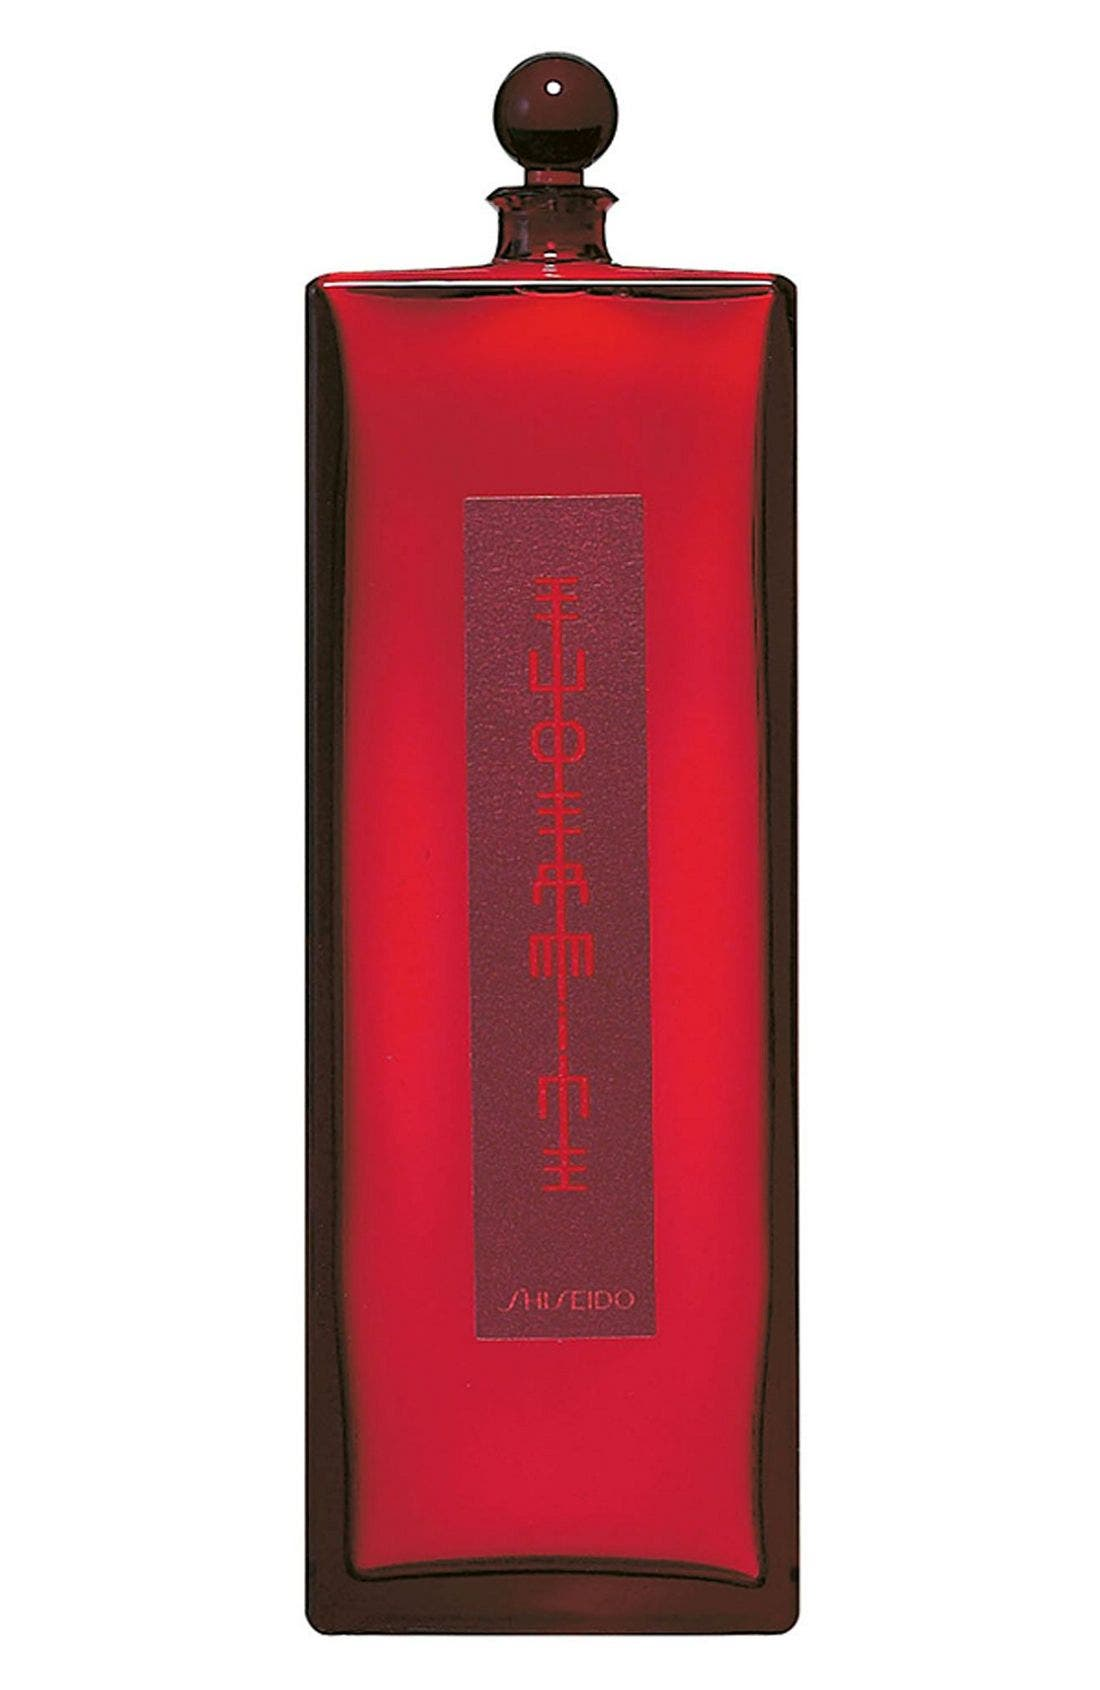 Shiseido 'Eudermine' Revitalizing Essence